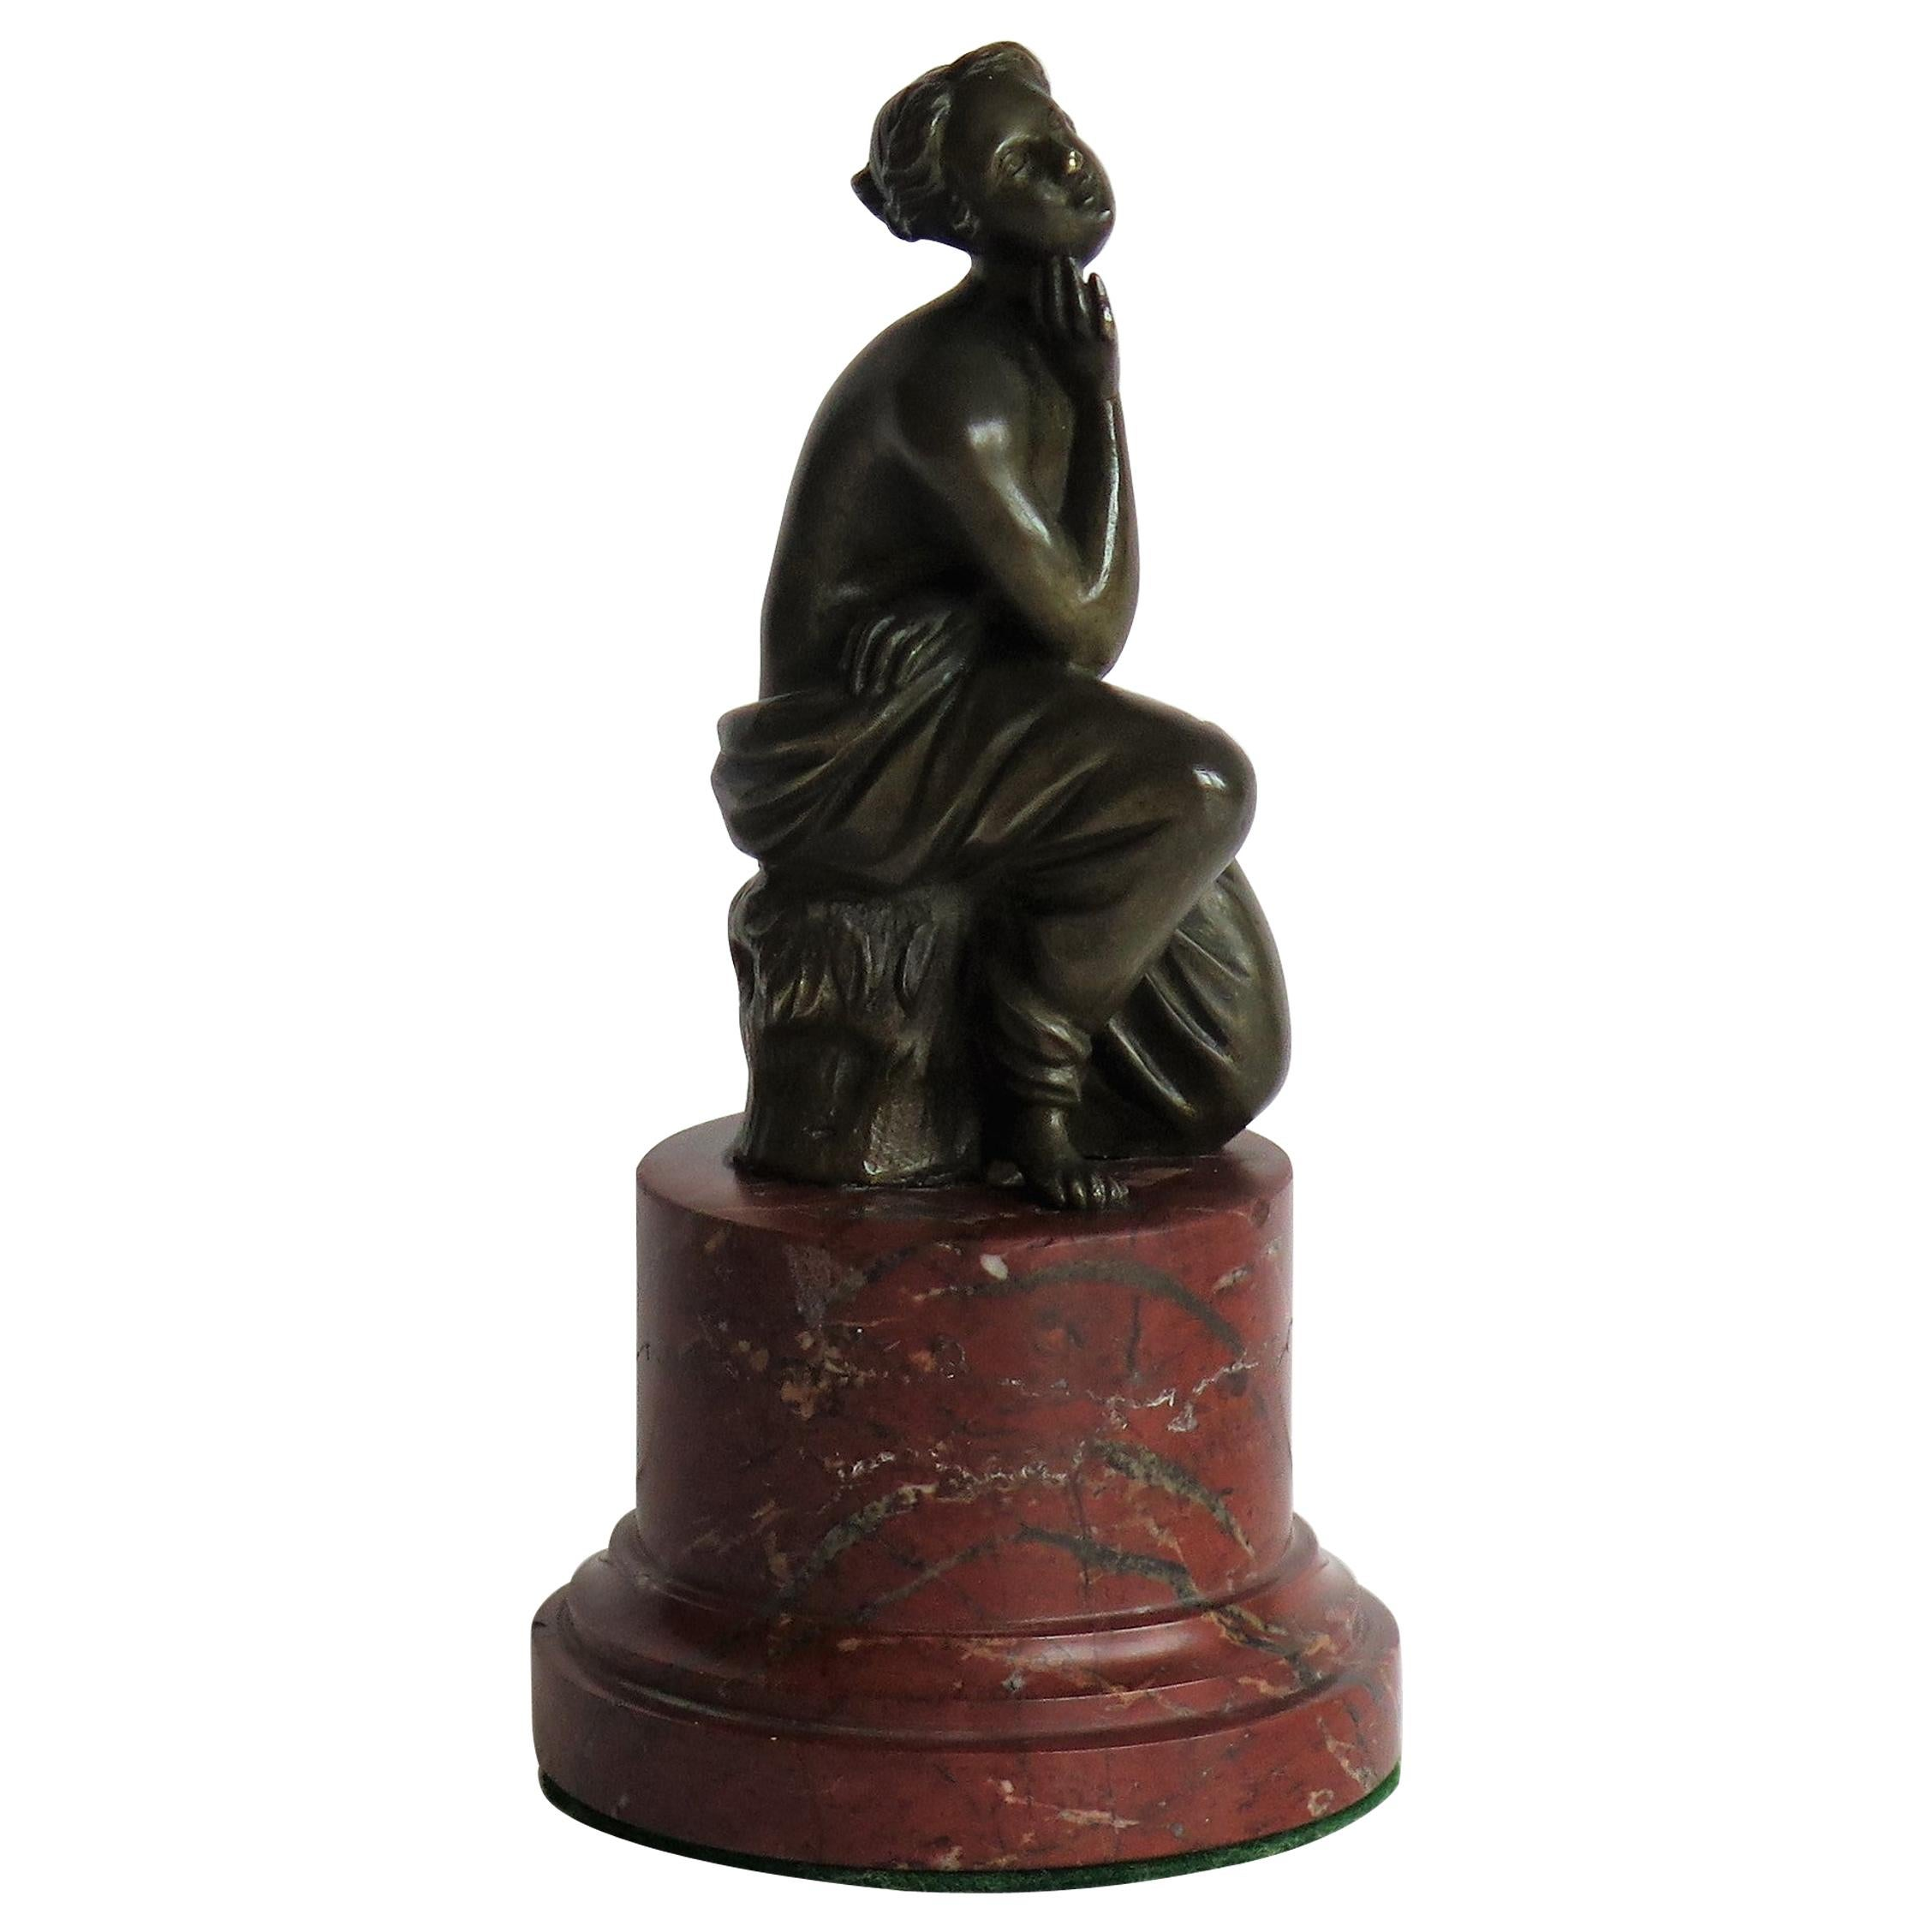 19thC. Art Nouveau Bronze Sculpture of Lady on Red Marble Base, Probably French